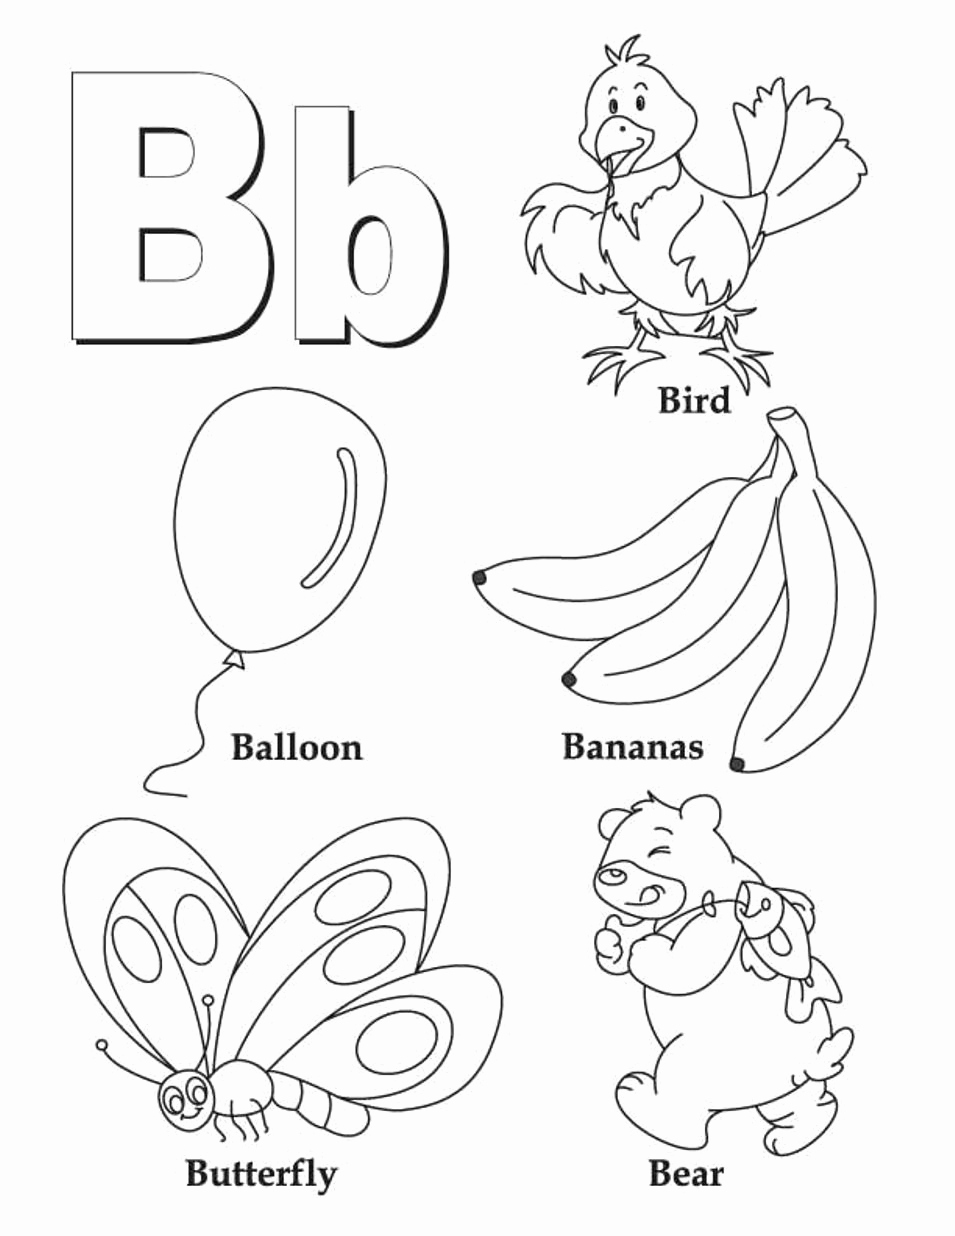 Letter B Printable New Letter B Coloring Pages Preschool and Kindergarten